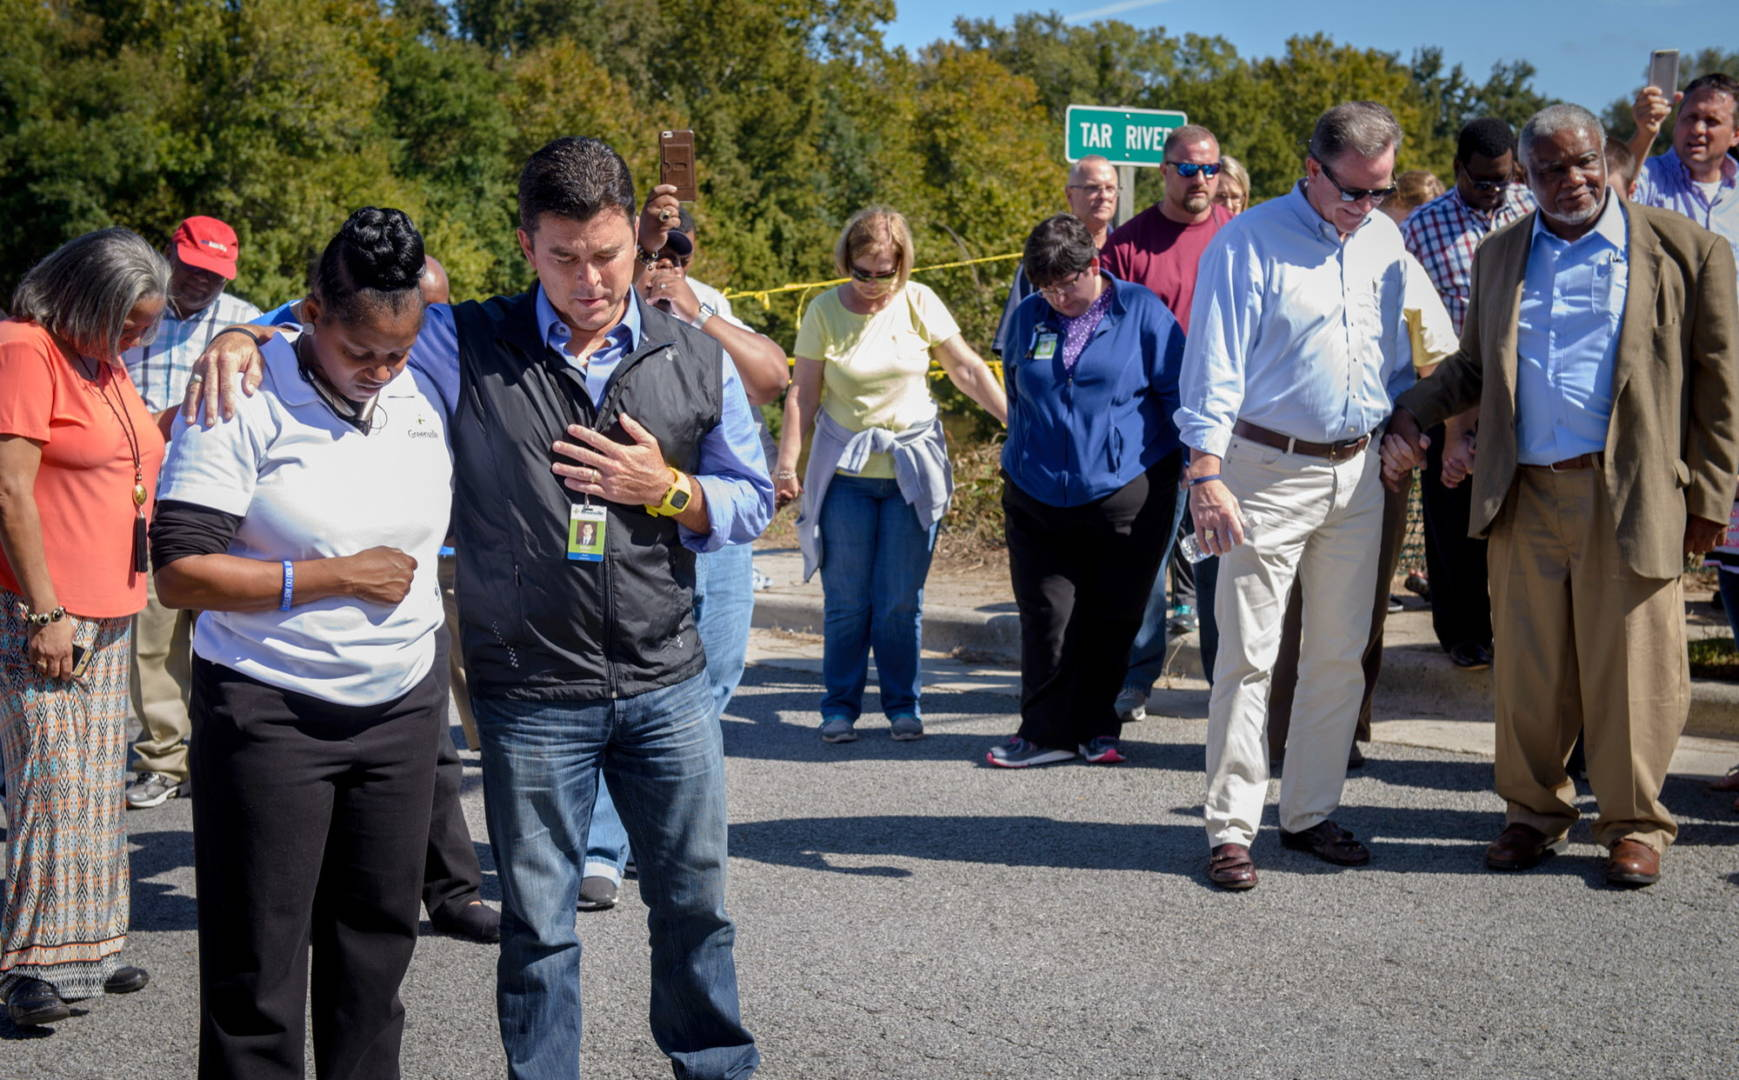 Mayor Thomas Allen (black vest) and citizens of Greenville, N.C., hold a prayer meeting next to the Tar River as the river rises after Hurricane Matthew. (©2016 World Vision, Laura Reinhardt)